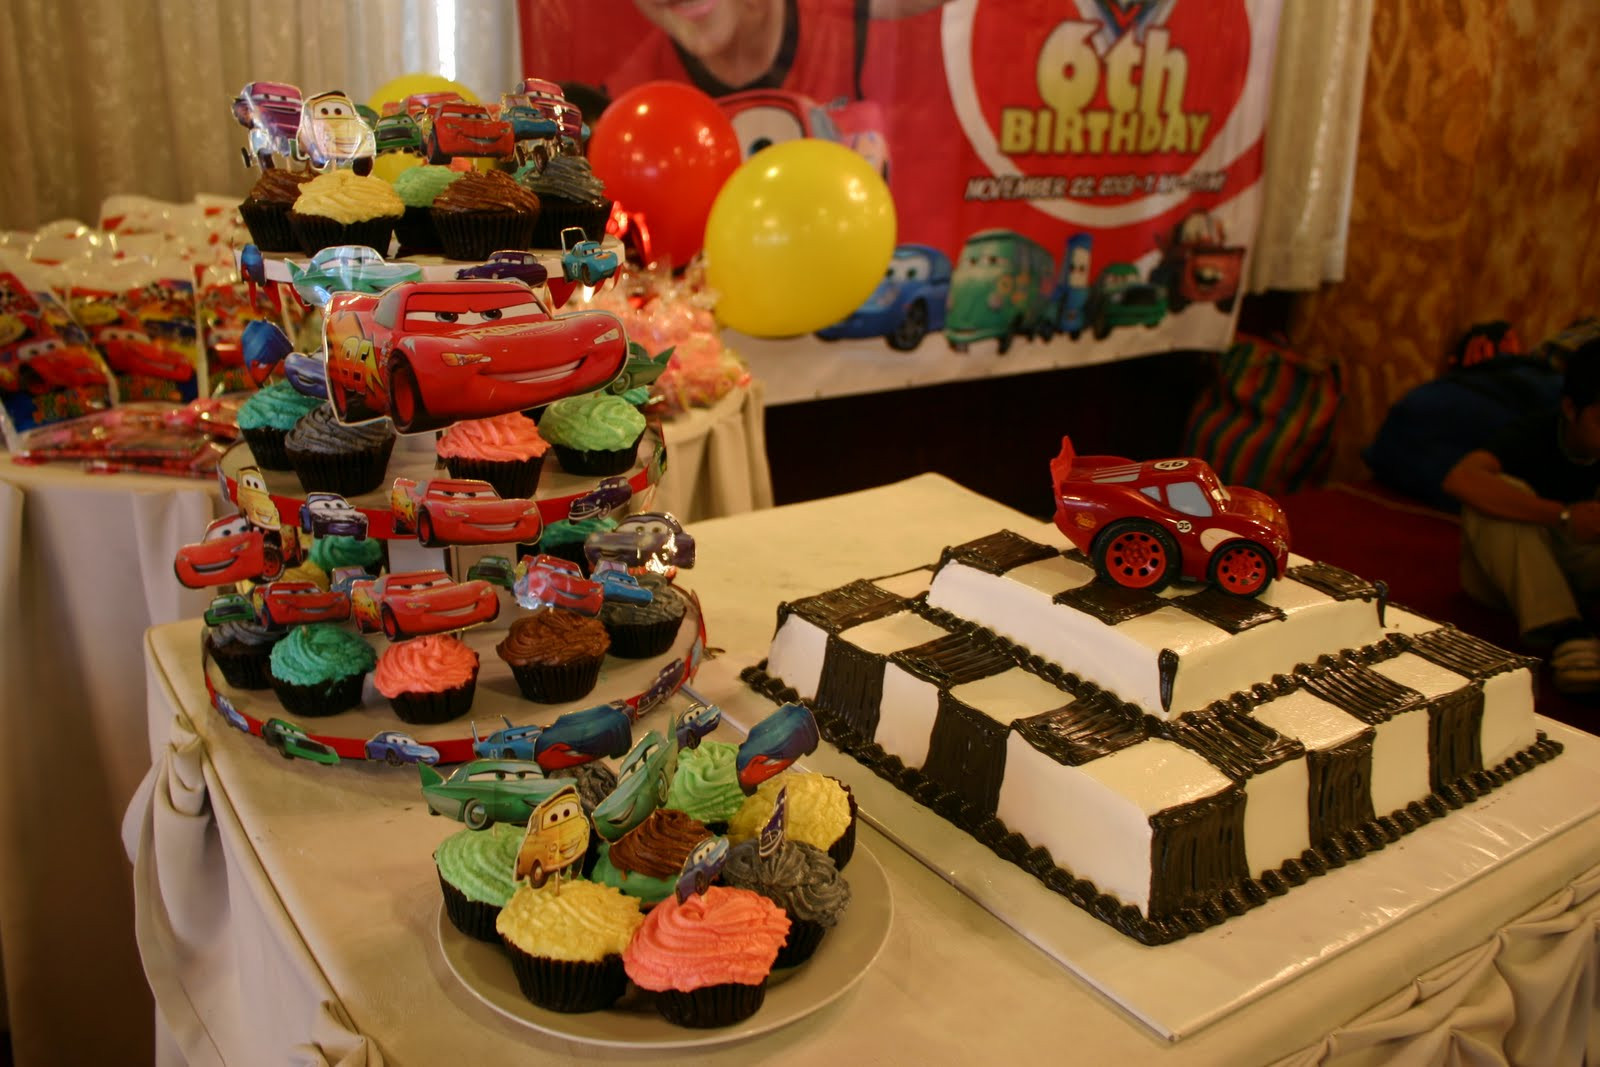 Best ideas about Best Birthday Party Ideas . Save or Pin Top 10 Birthday Party Themes for 2014 Now.